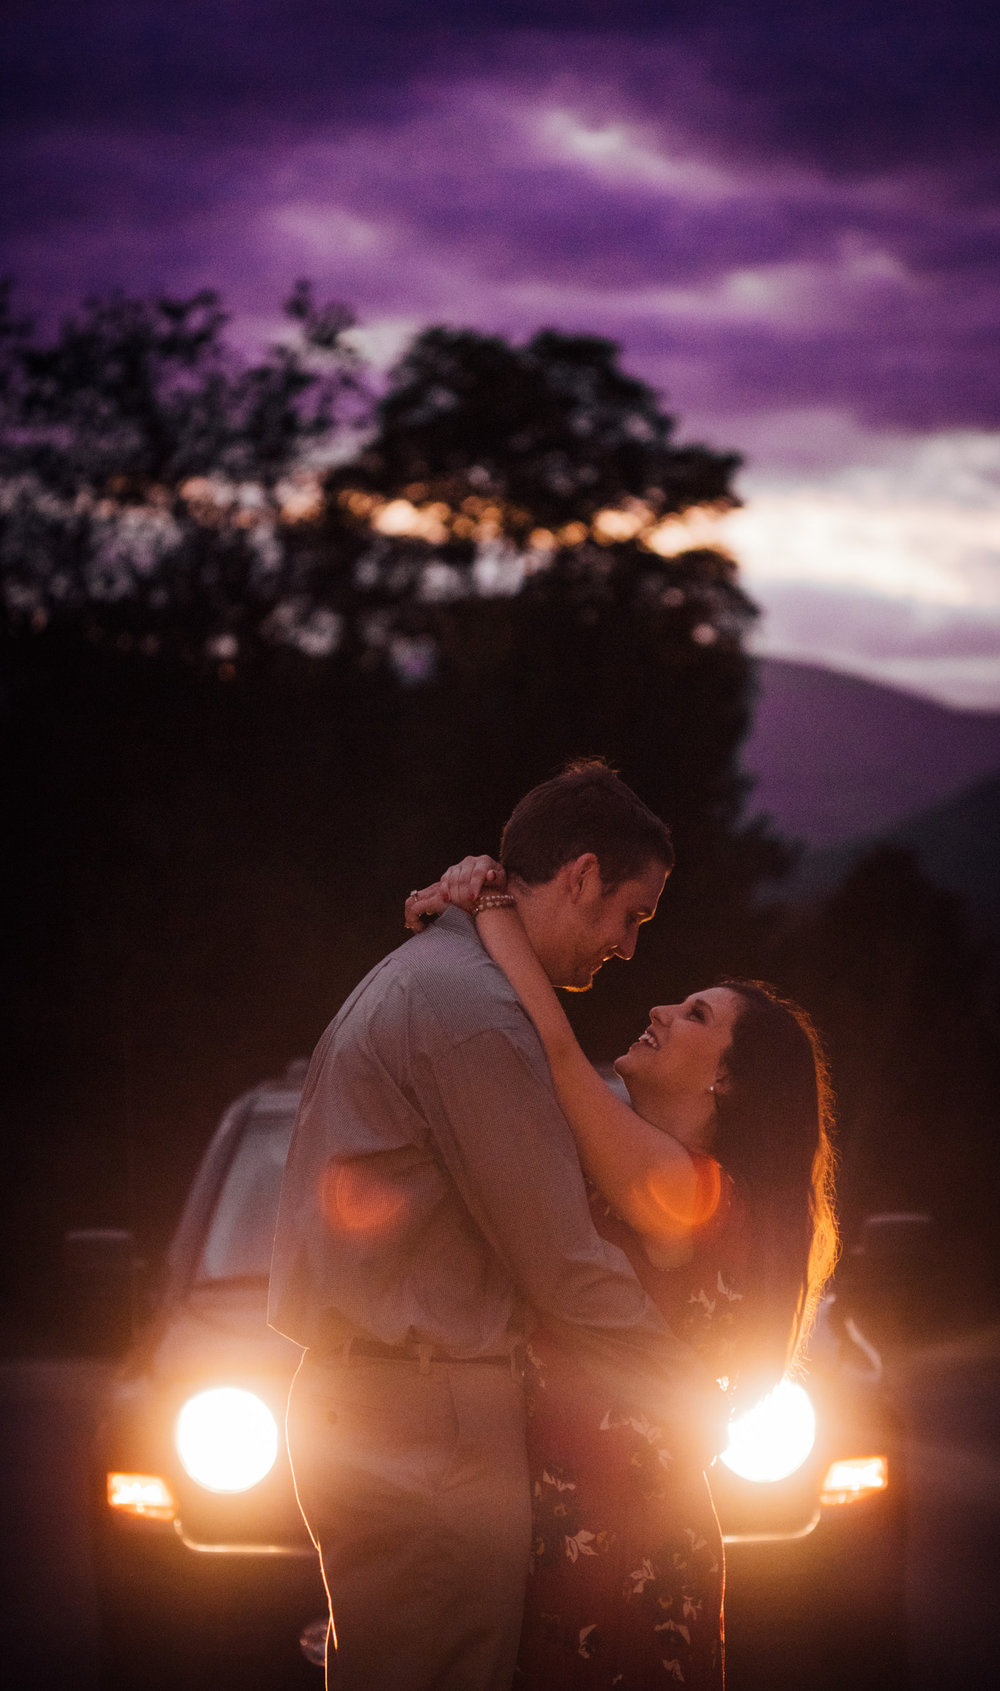 romantic-engagement-photographer-near-me.jpg